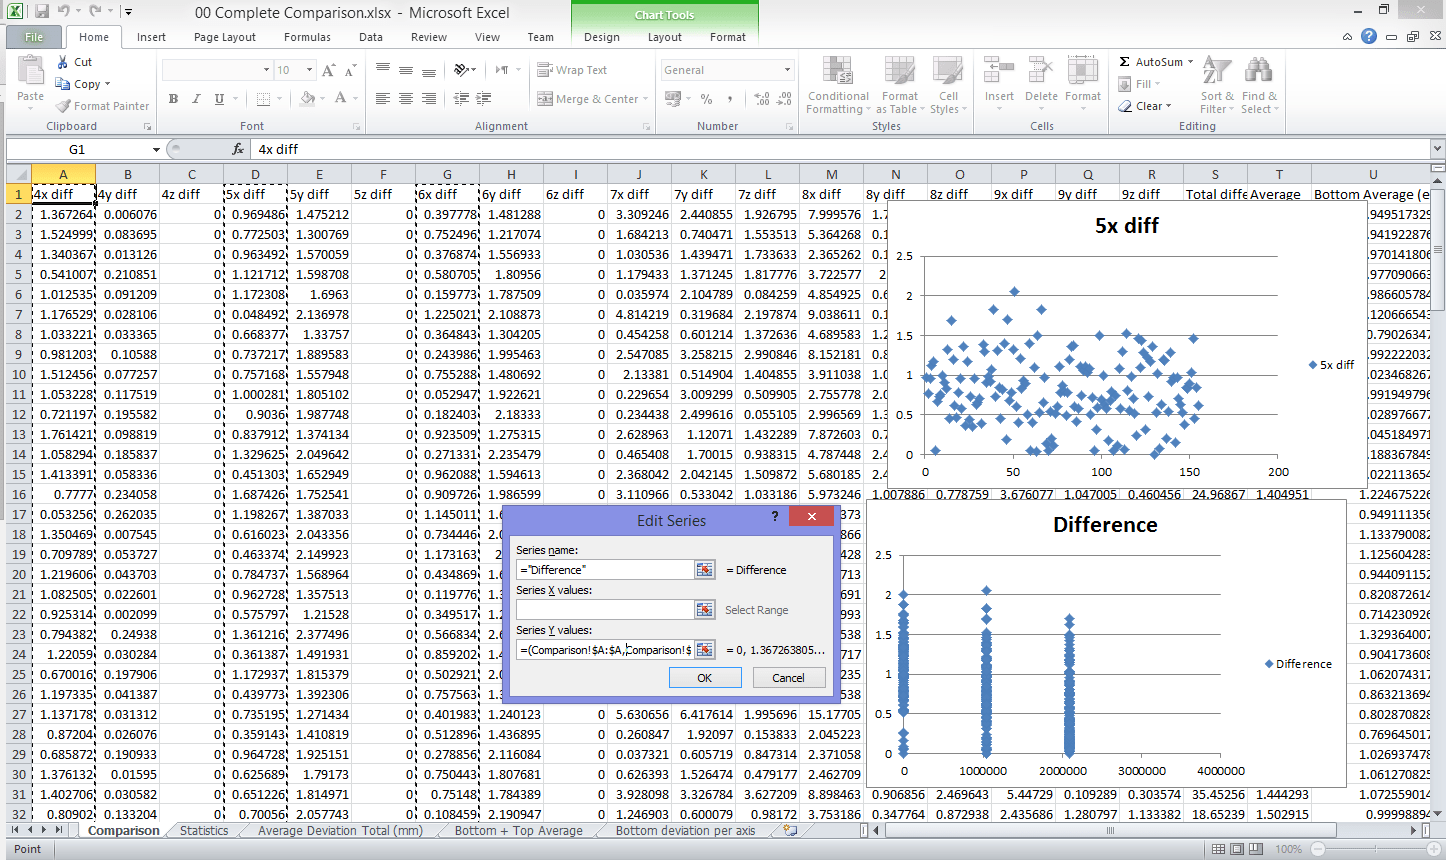 How Can I Plot Multiple Columns As A Single Continuous